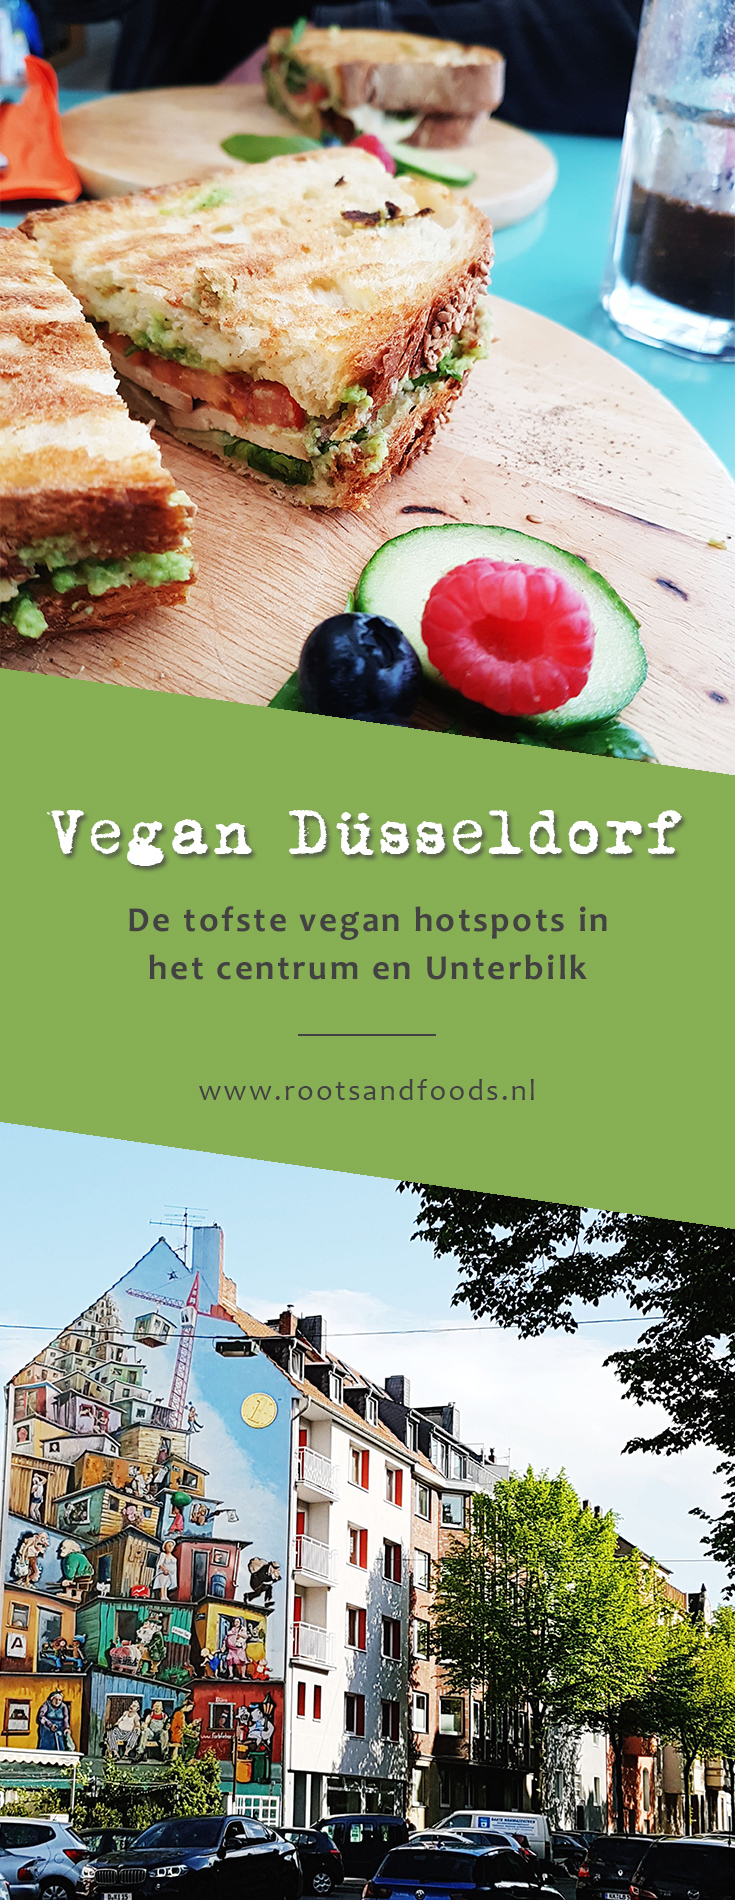 vegan dusseldorf pin roots and foods. Black Bedroom Furniture Sets. Home Design Ideas